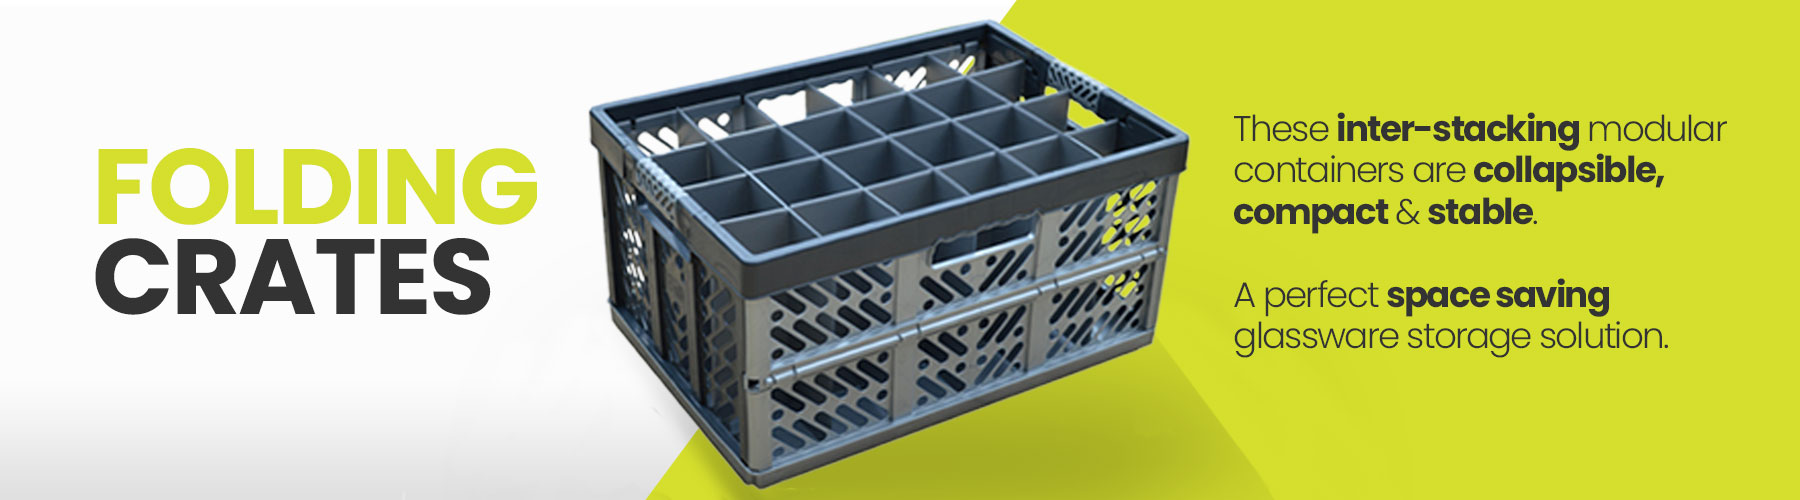 Glass-Storage-Folding-Crate-Hampshire